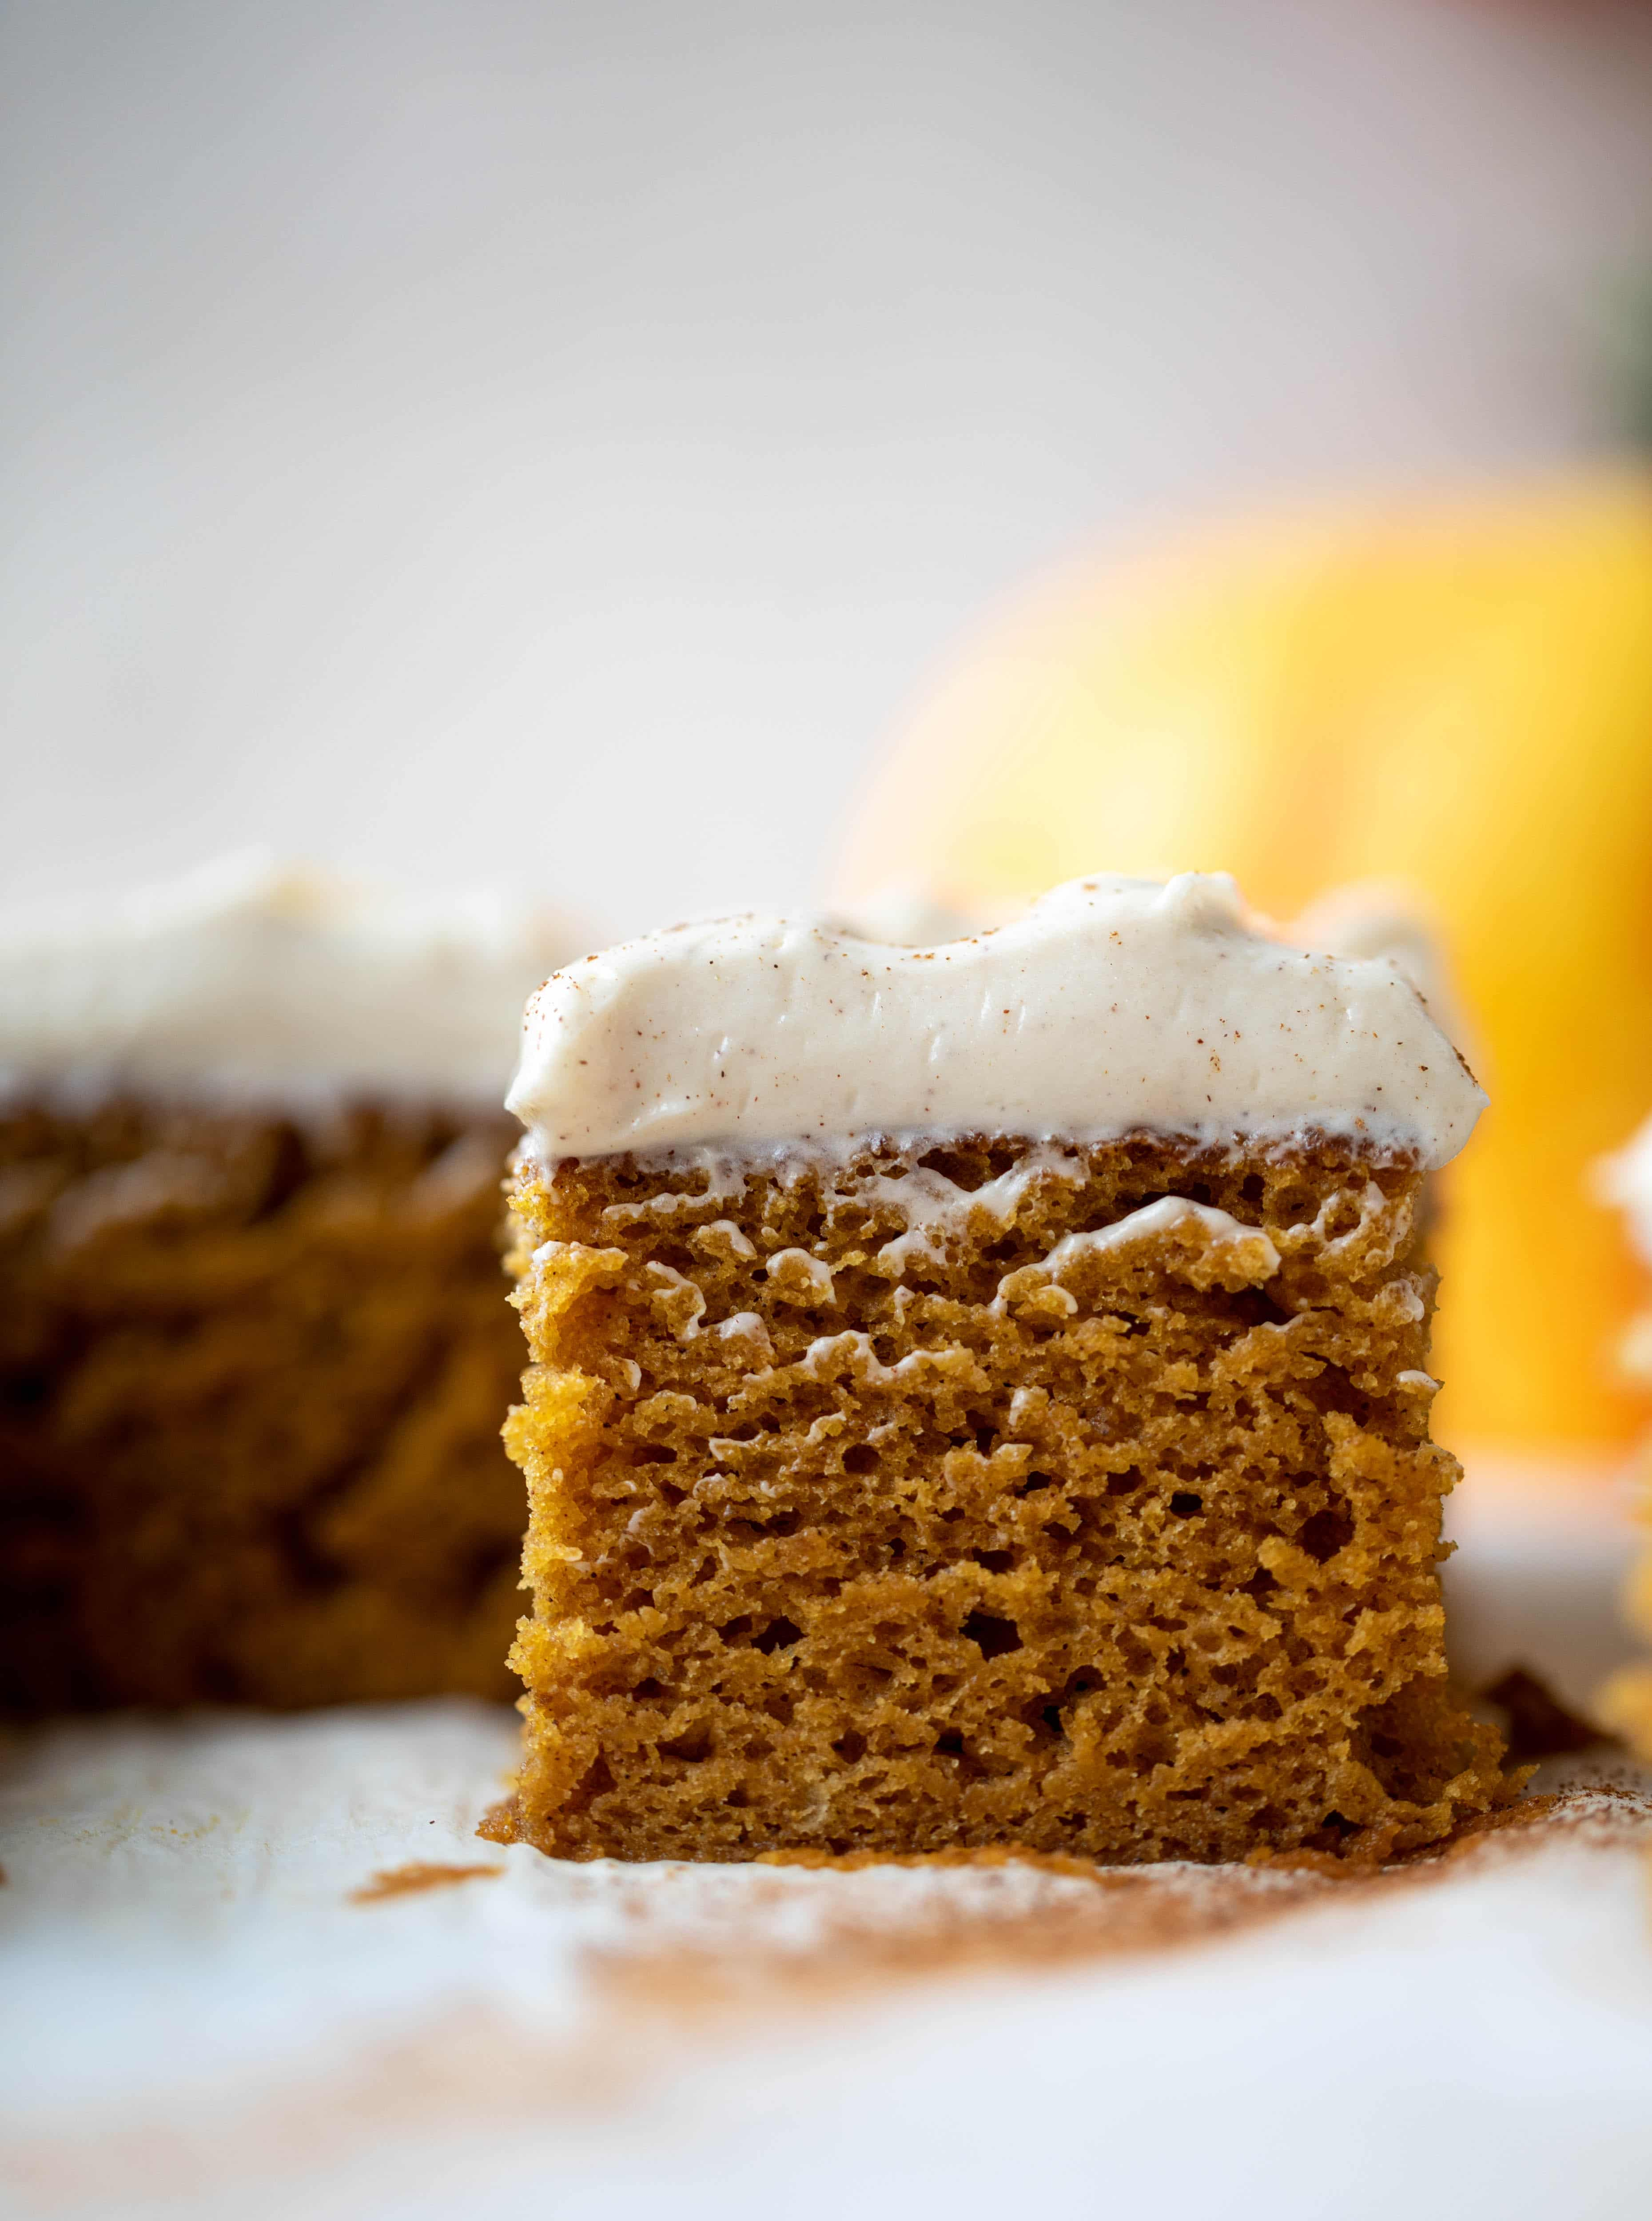 This pumpkin sheet cake is a legit pumpkin dream cake! It's so moist and fluffy and flavorful. With a blanket of cinnamon cream cheese frosting!